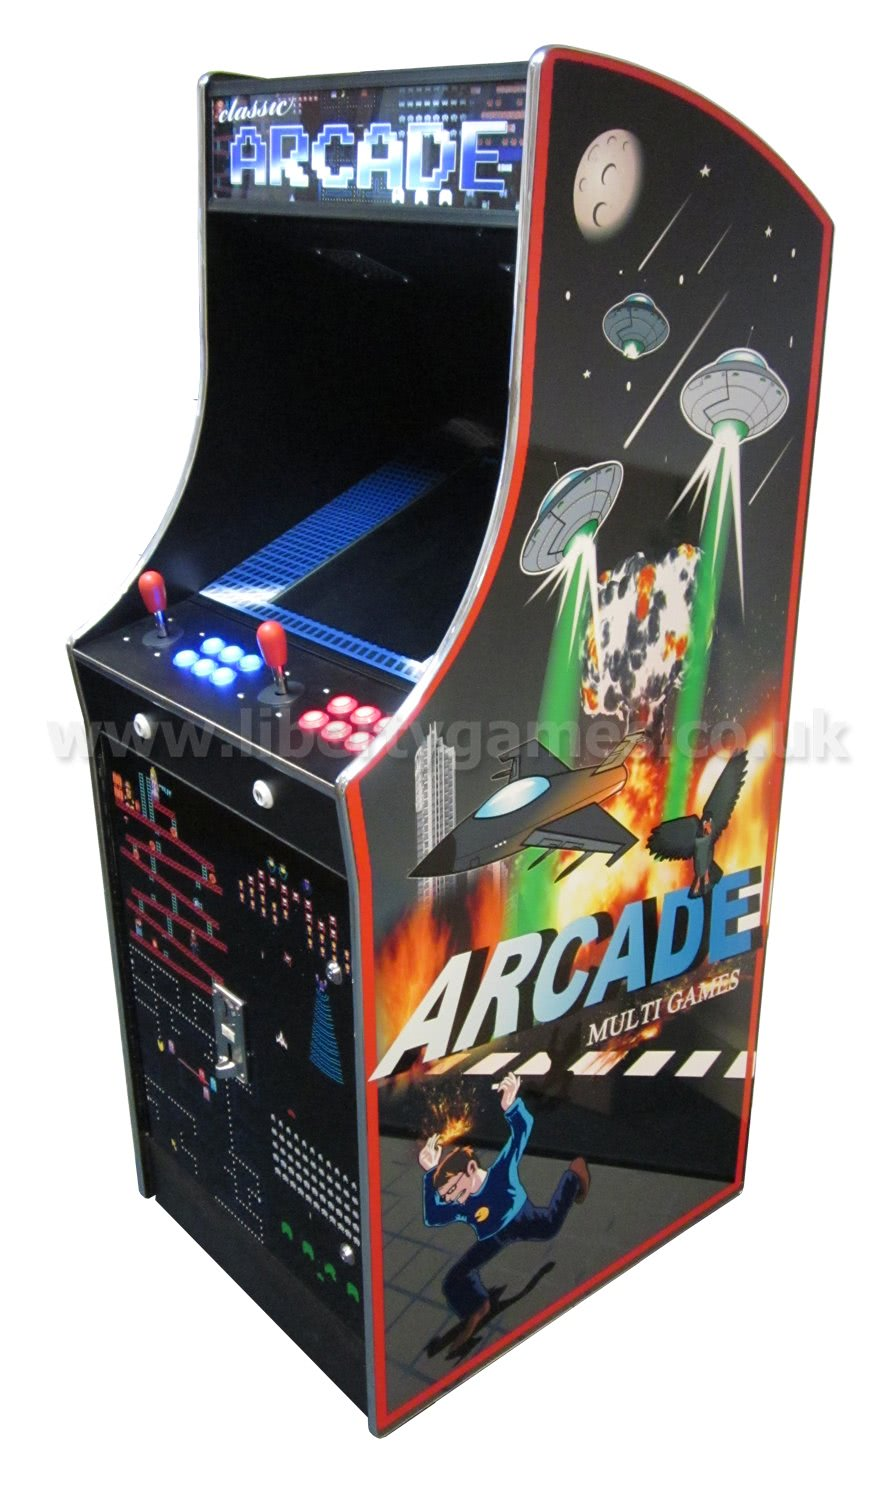 arcade machine artwork